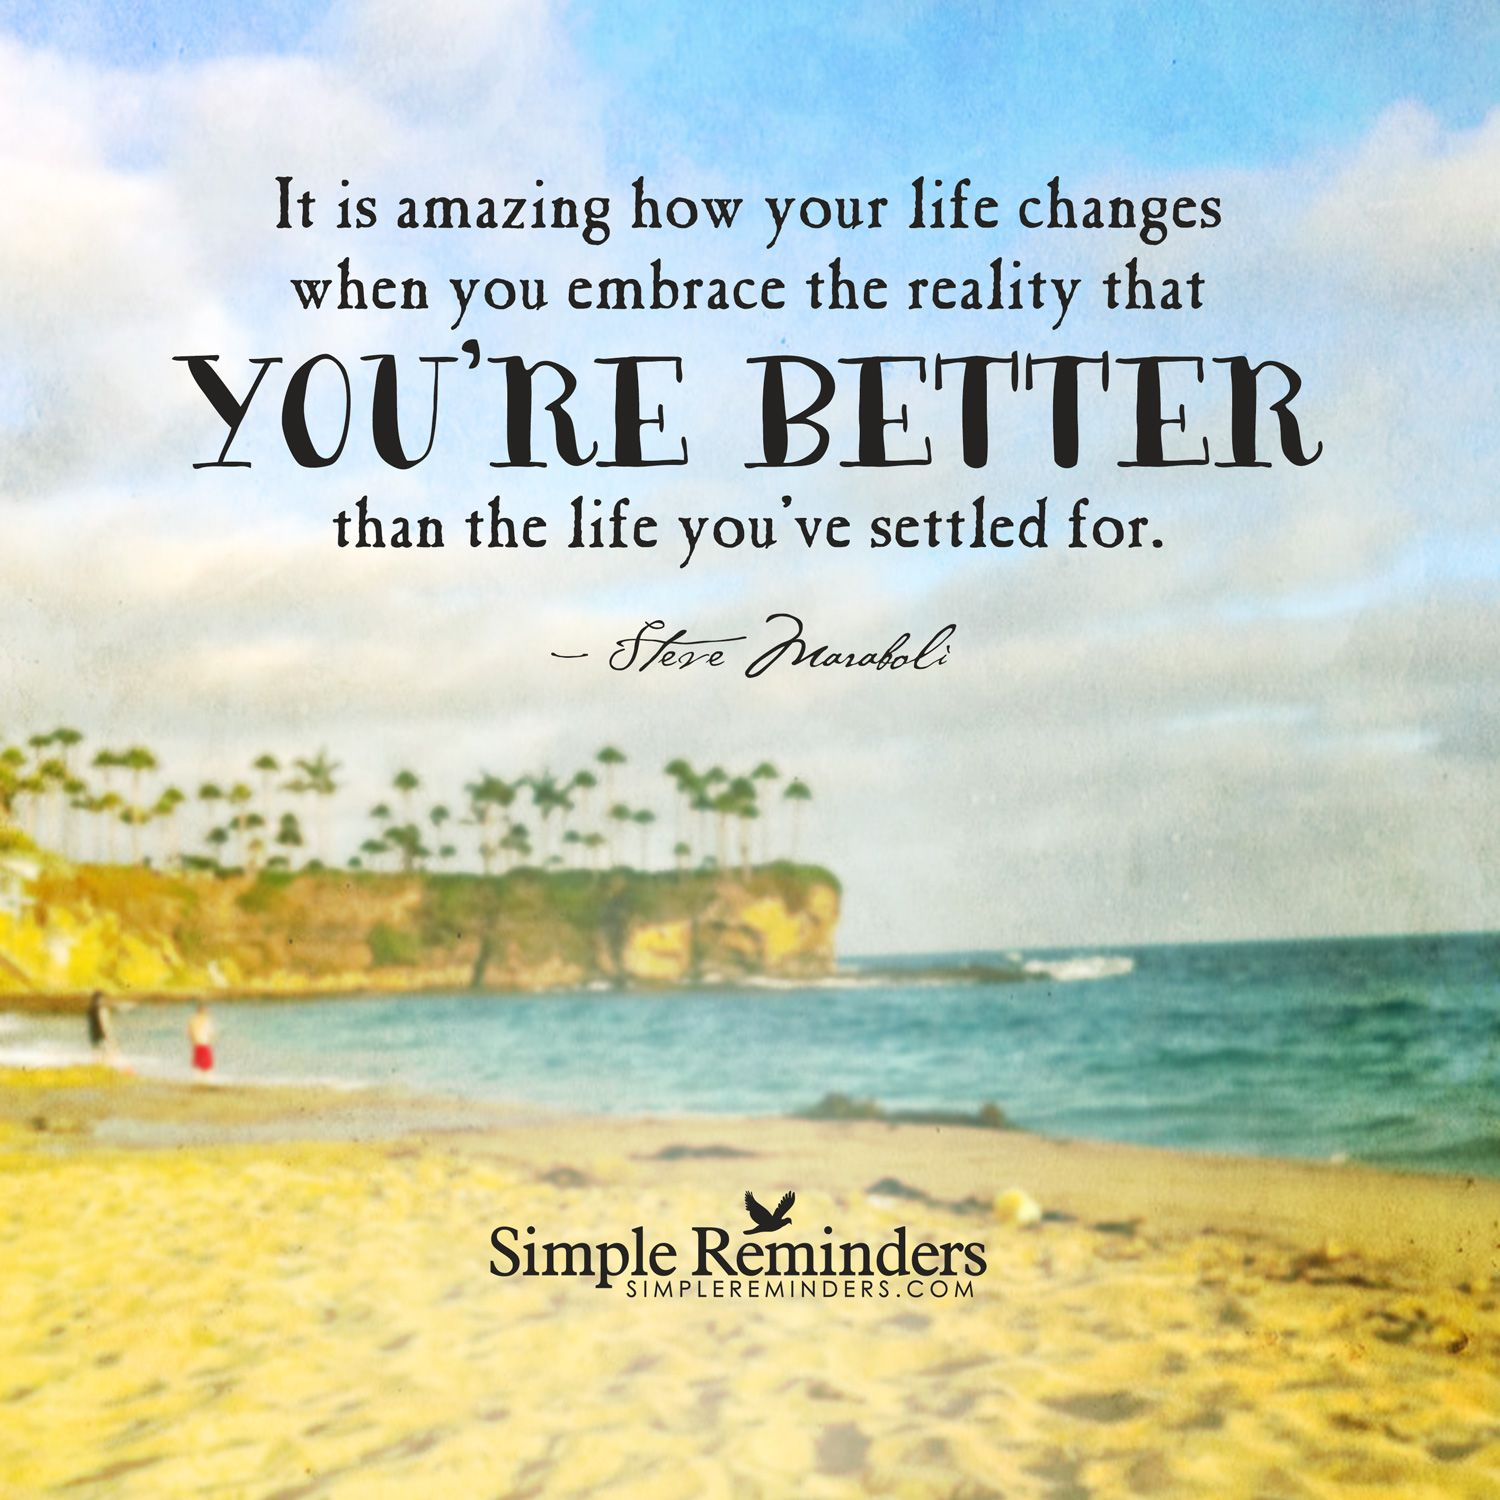 Inspirational Quotes About Life Changes: It Is Amazing How Your Life Changes When You Embrace The